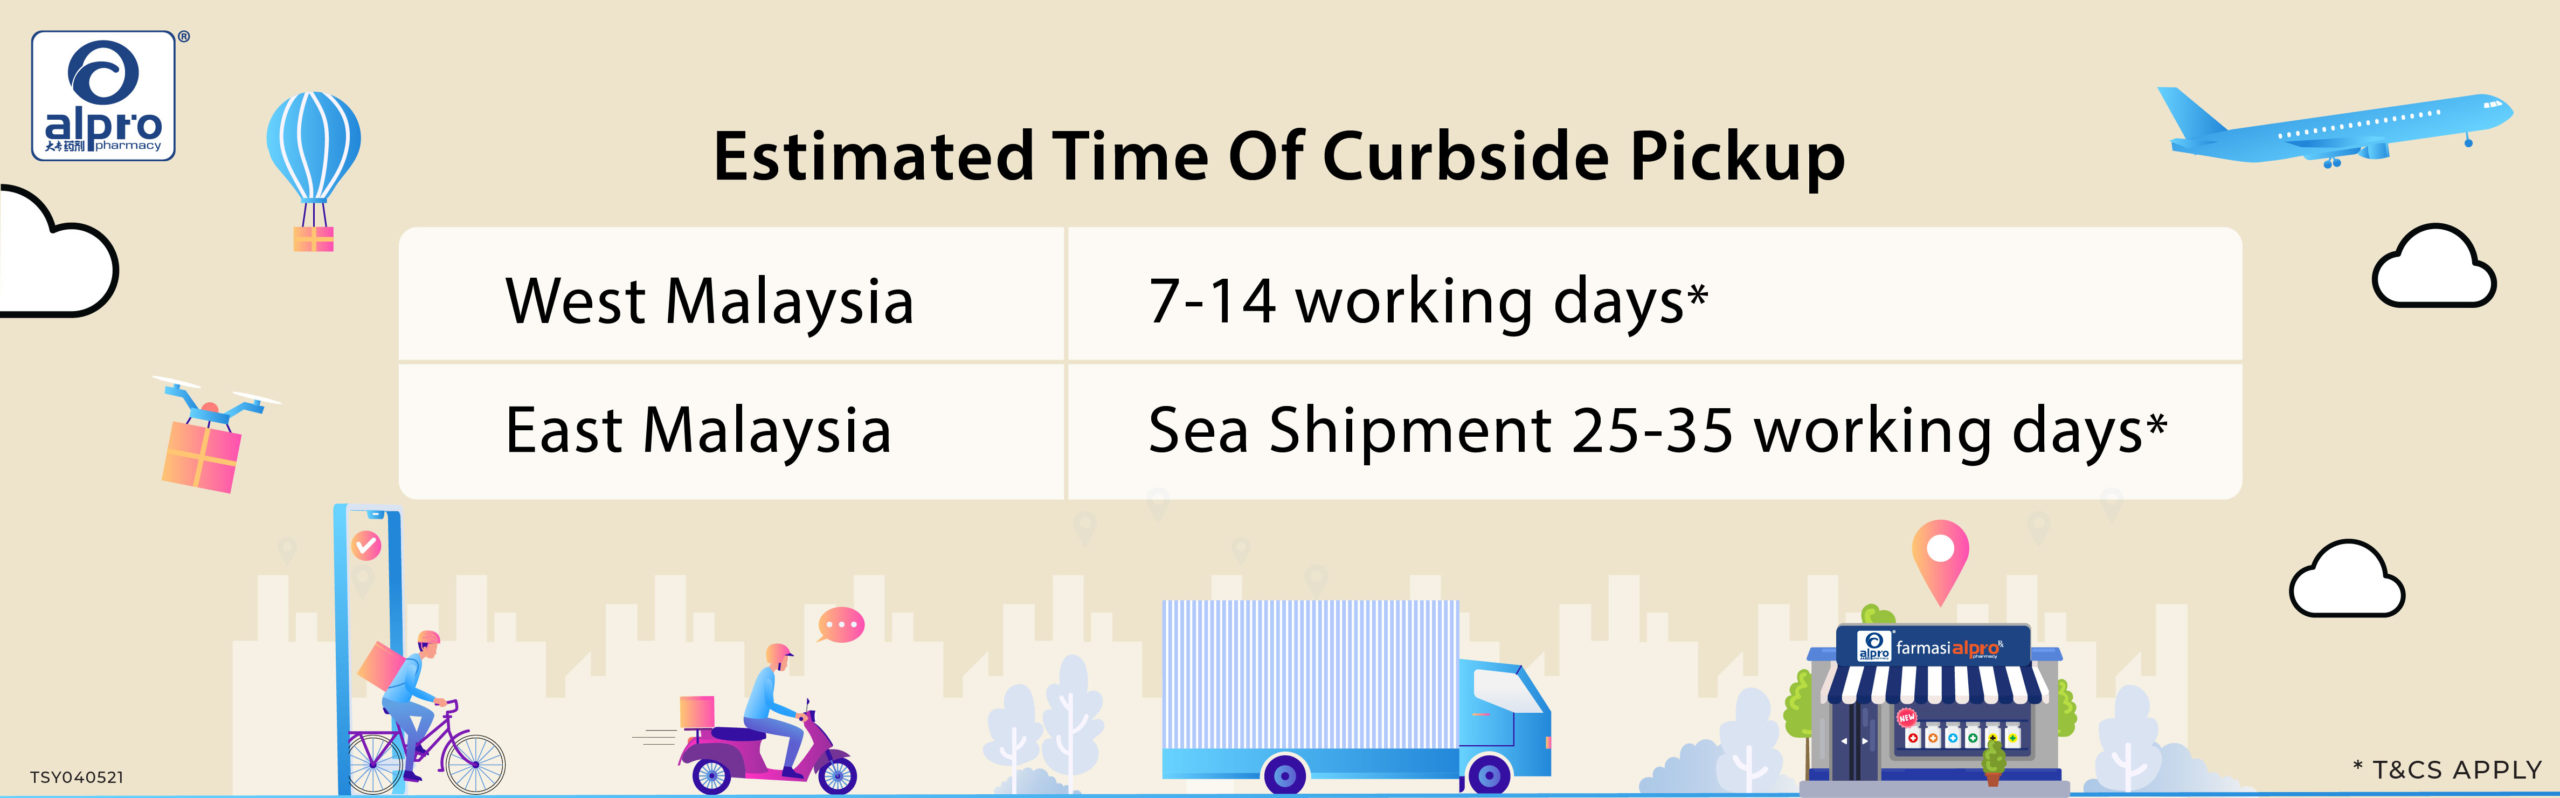 free delivery_2_Estimated Time Of Curbside Pickup